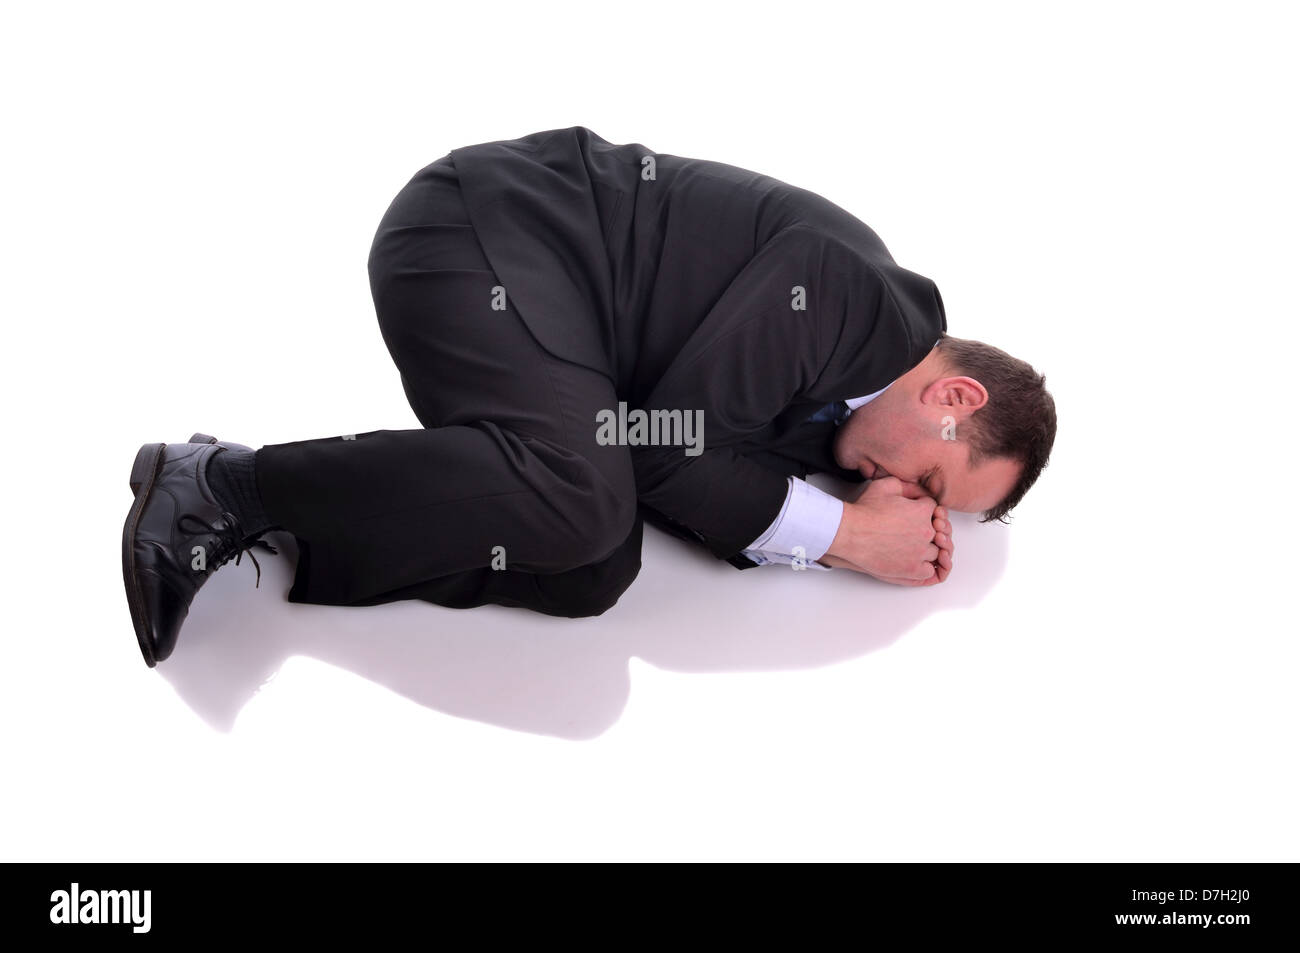 Businessman laying down in fetal position. Image is isolated on white - Stock Image